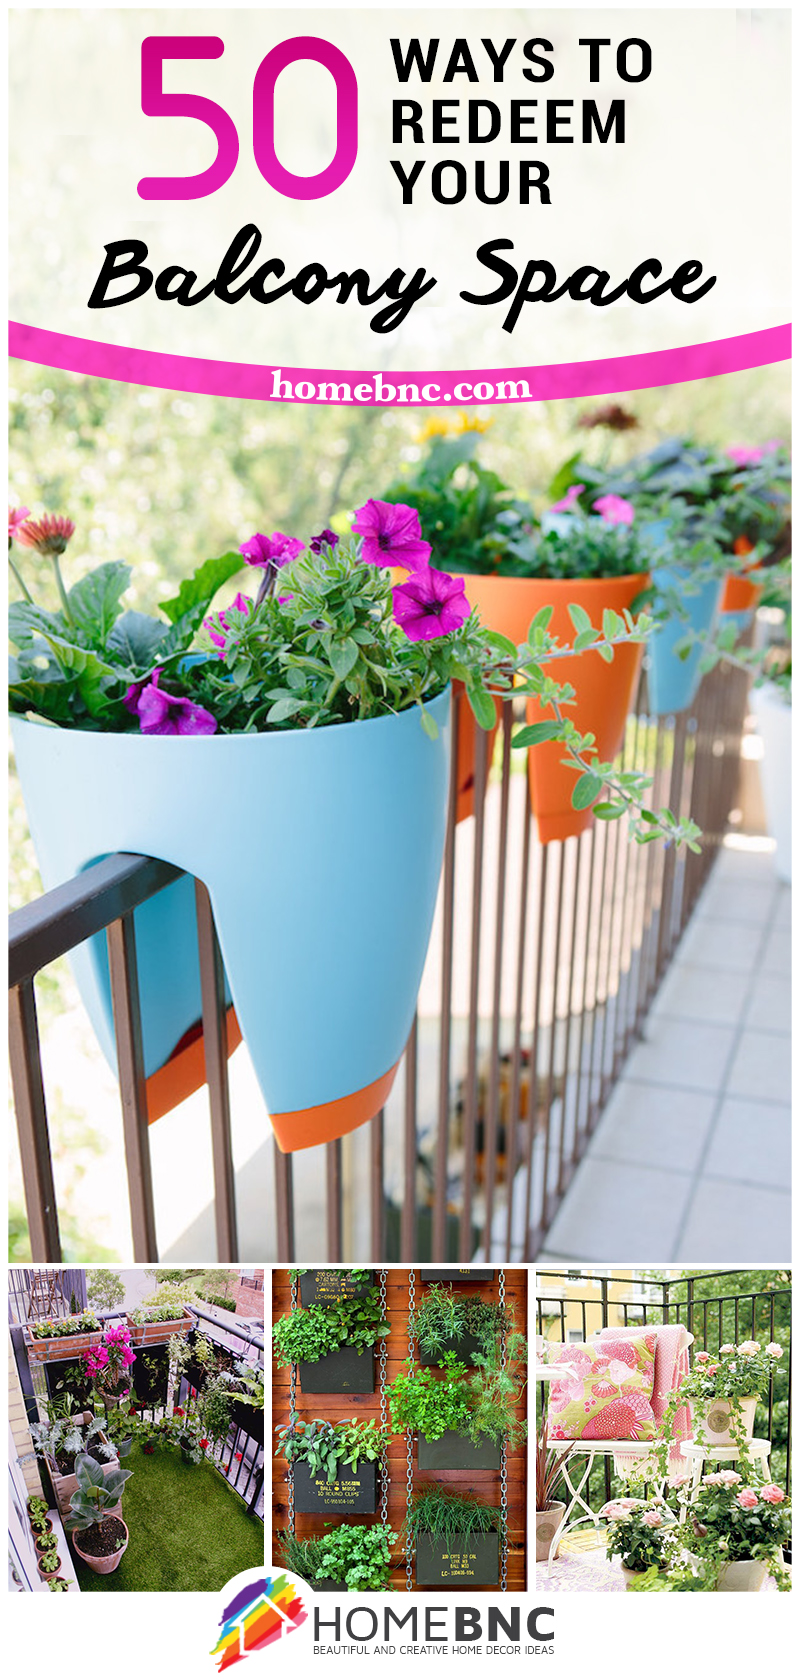 50 Best Balcony Garden Ideas and Designs for 2019 Narrow Page Garden Design Ideas Home on narrow garden design with stone, best garden ideas, painted flower pot ideas, japanese garden ideas, narrow patio ideas, unique garden fountain ideas, road design ideas, container flower pot arrangement ideas, small water garden fountain ideas, front yard landscape design ideas, narrow gardening ideas, small narrow backyard ideas, narrow family room designs, long narrow garden ideas, narrow decorating ideas, small rose garden layout ideas, side yard landscaping ideas, narrow landscape ideas, japanese modern landscape design ideas, small outdoor spaces design ideas,